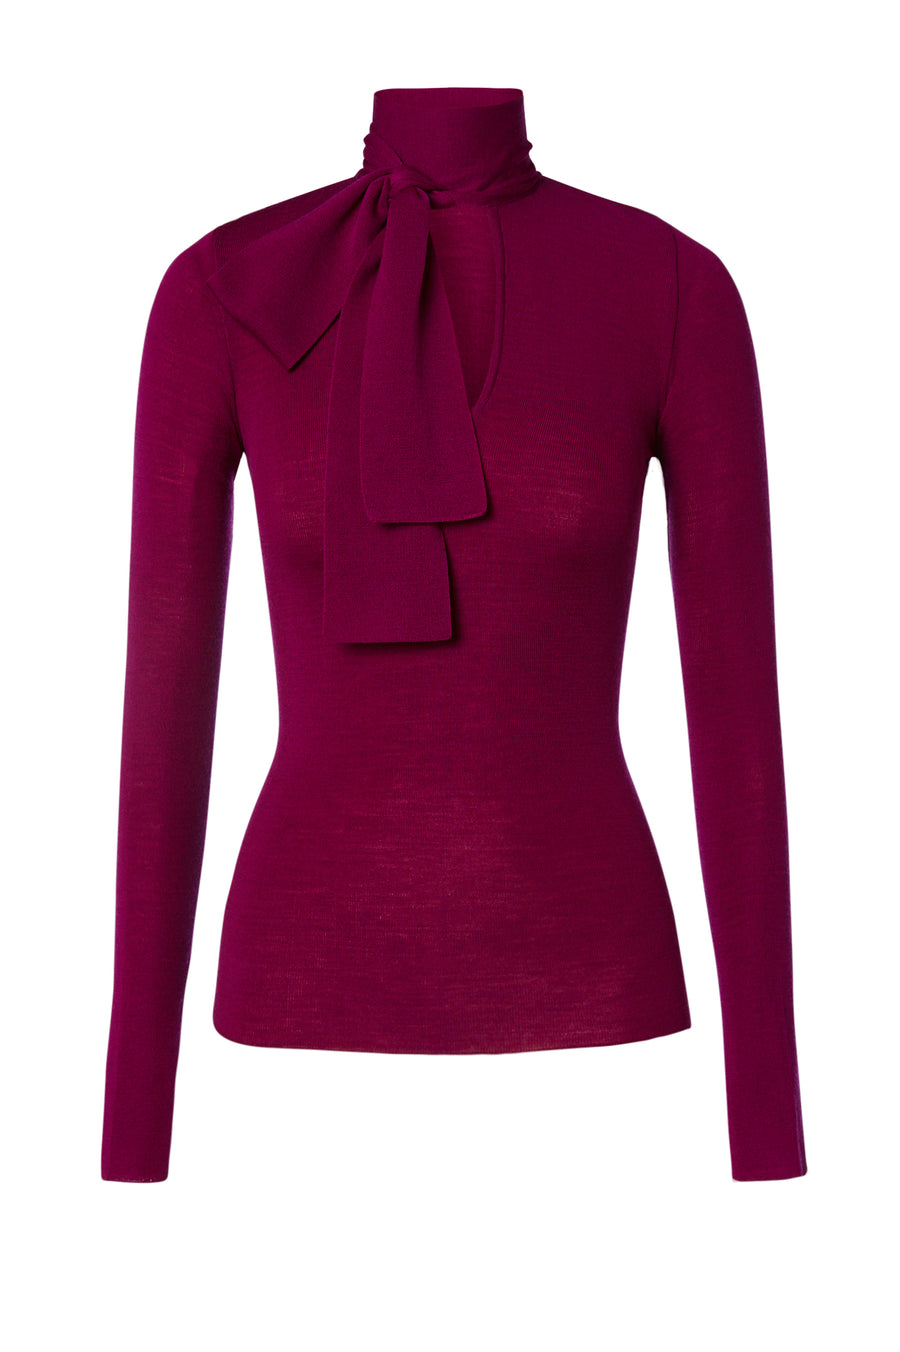 Babywool, 100% Australian Extrafine Merino, Long Sleeve, Tie Neck, color Crimson